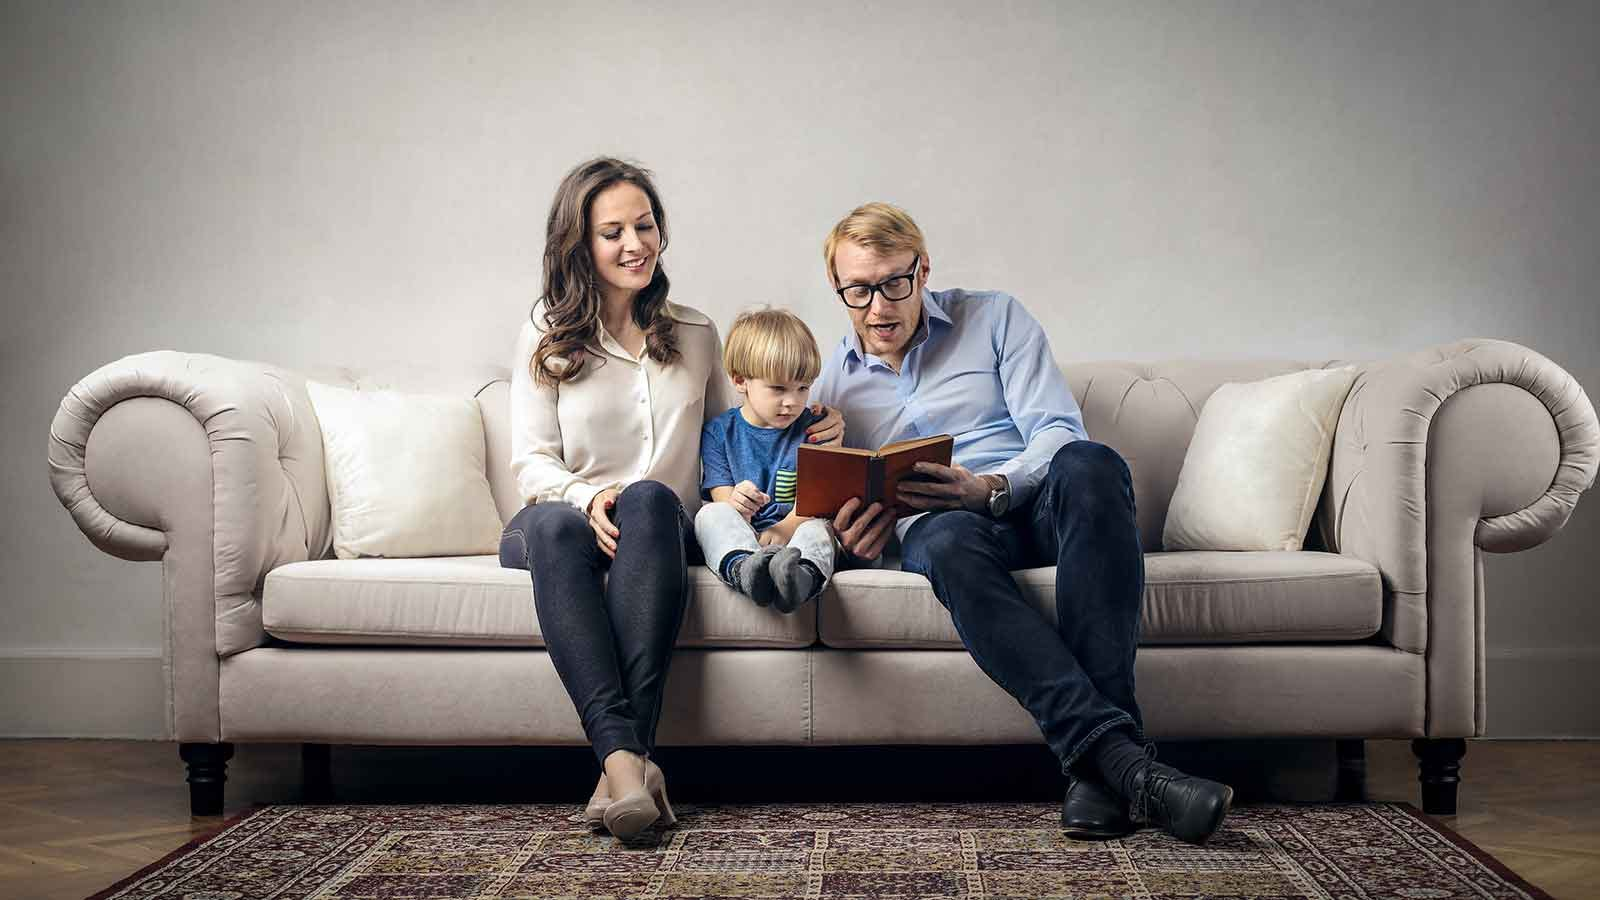 Family reading a book together on the couch.